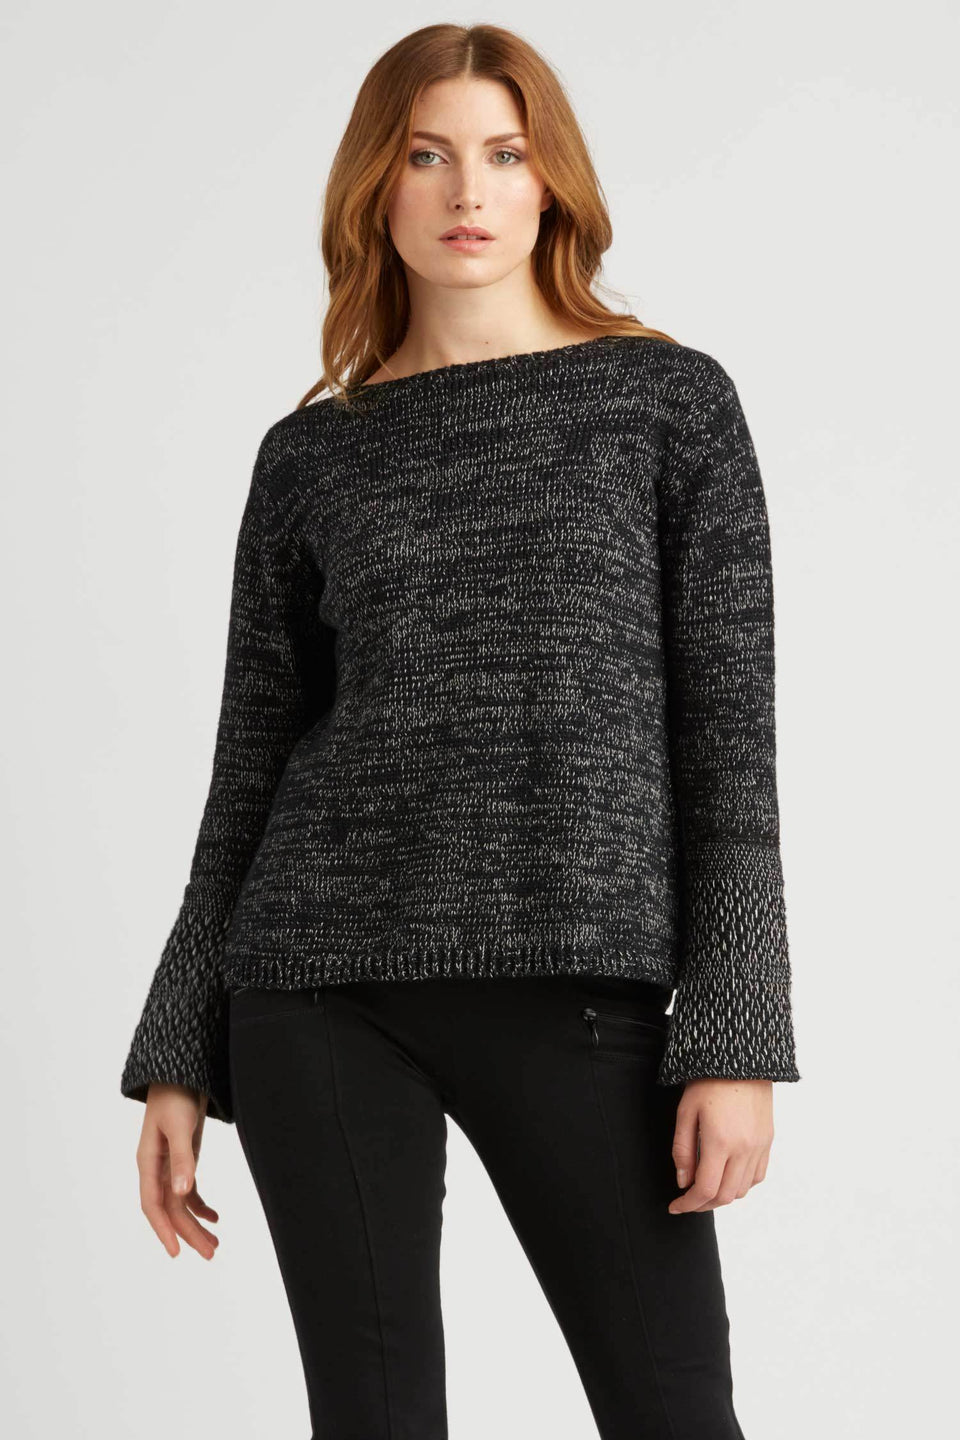 Woven Cuff Pullover in Black Ivory Mix